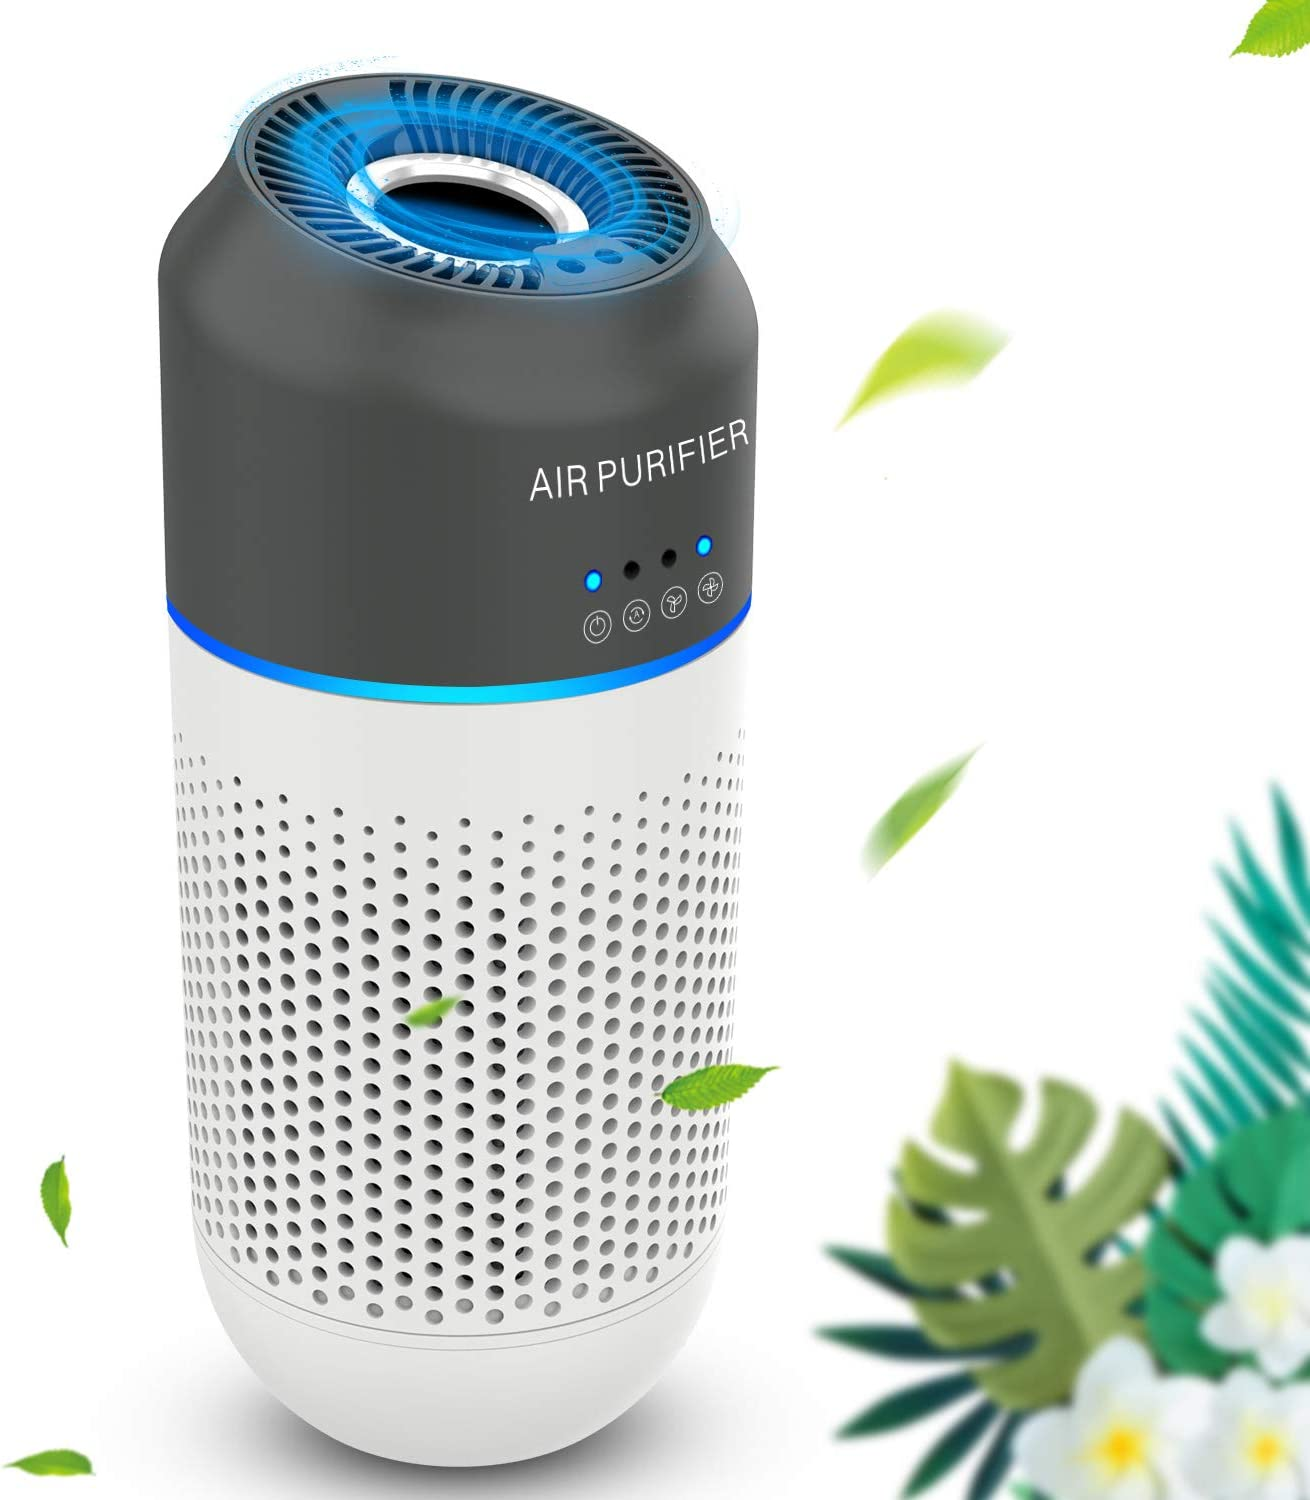 Portable Air Purifier USB Power Input HEPA Filter 4Stage Fits Vehicle Cup Holder